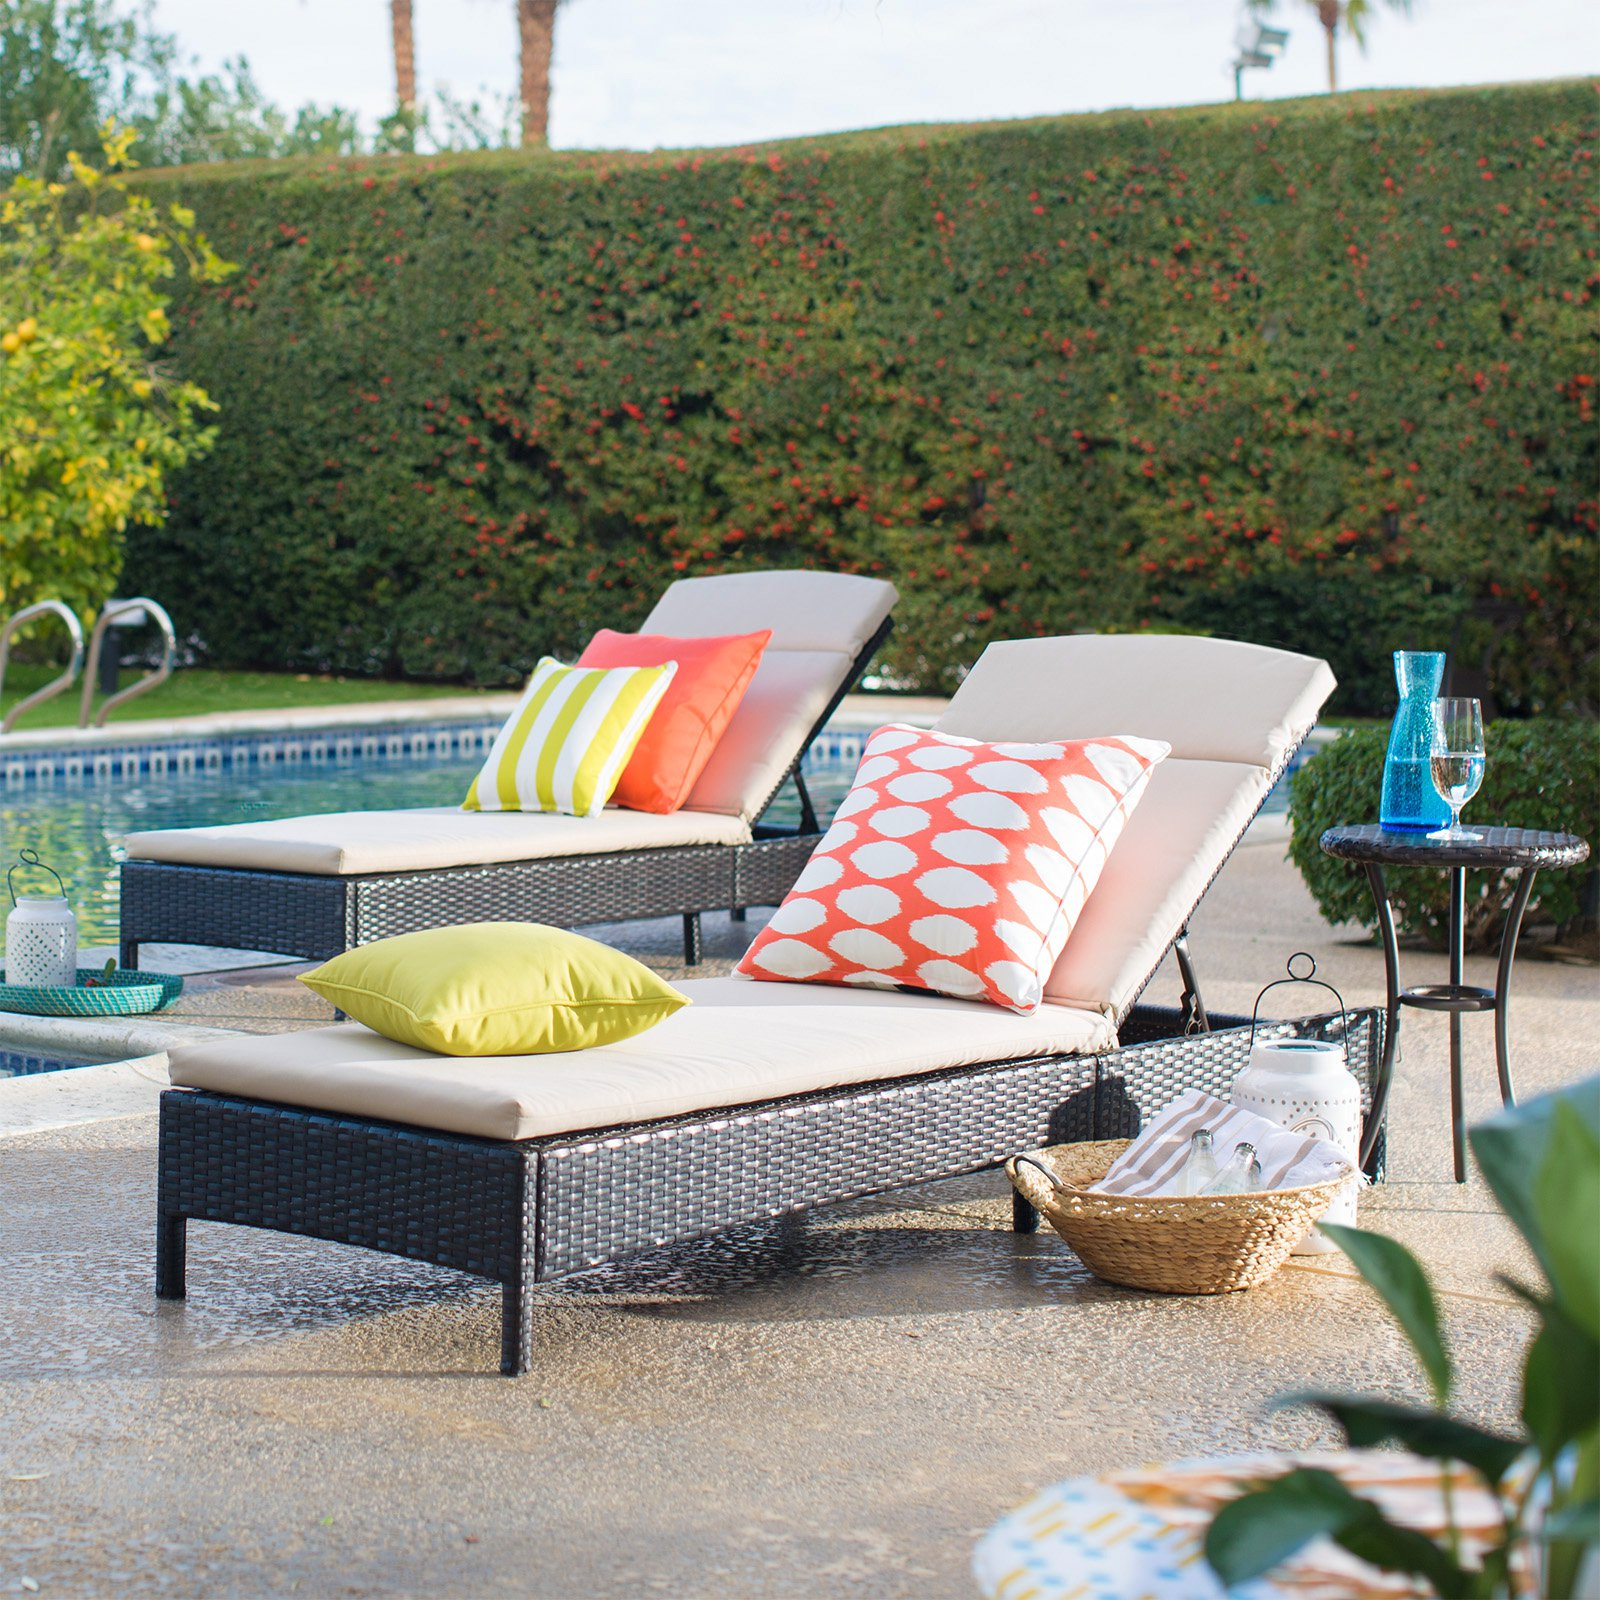 Preferred Coral Coast Berea All Weather Wicker Chaise Lounges With Side Table – 3 Piece Set Regarding Outdoor 3 Piece Wicker Chaise Lounges And Table Sets (View 13 of 25)